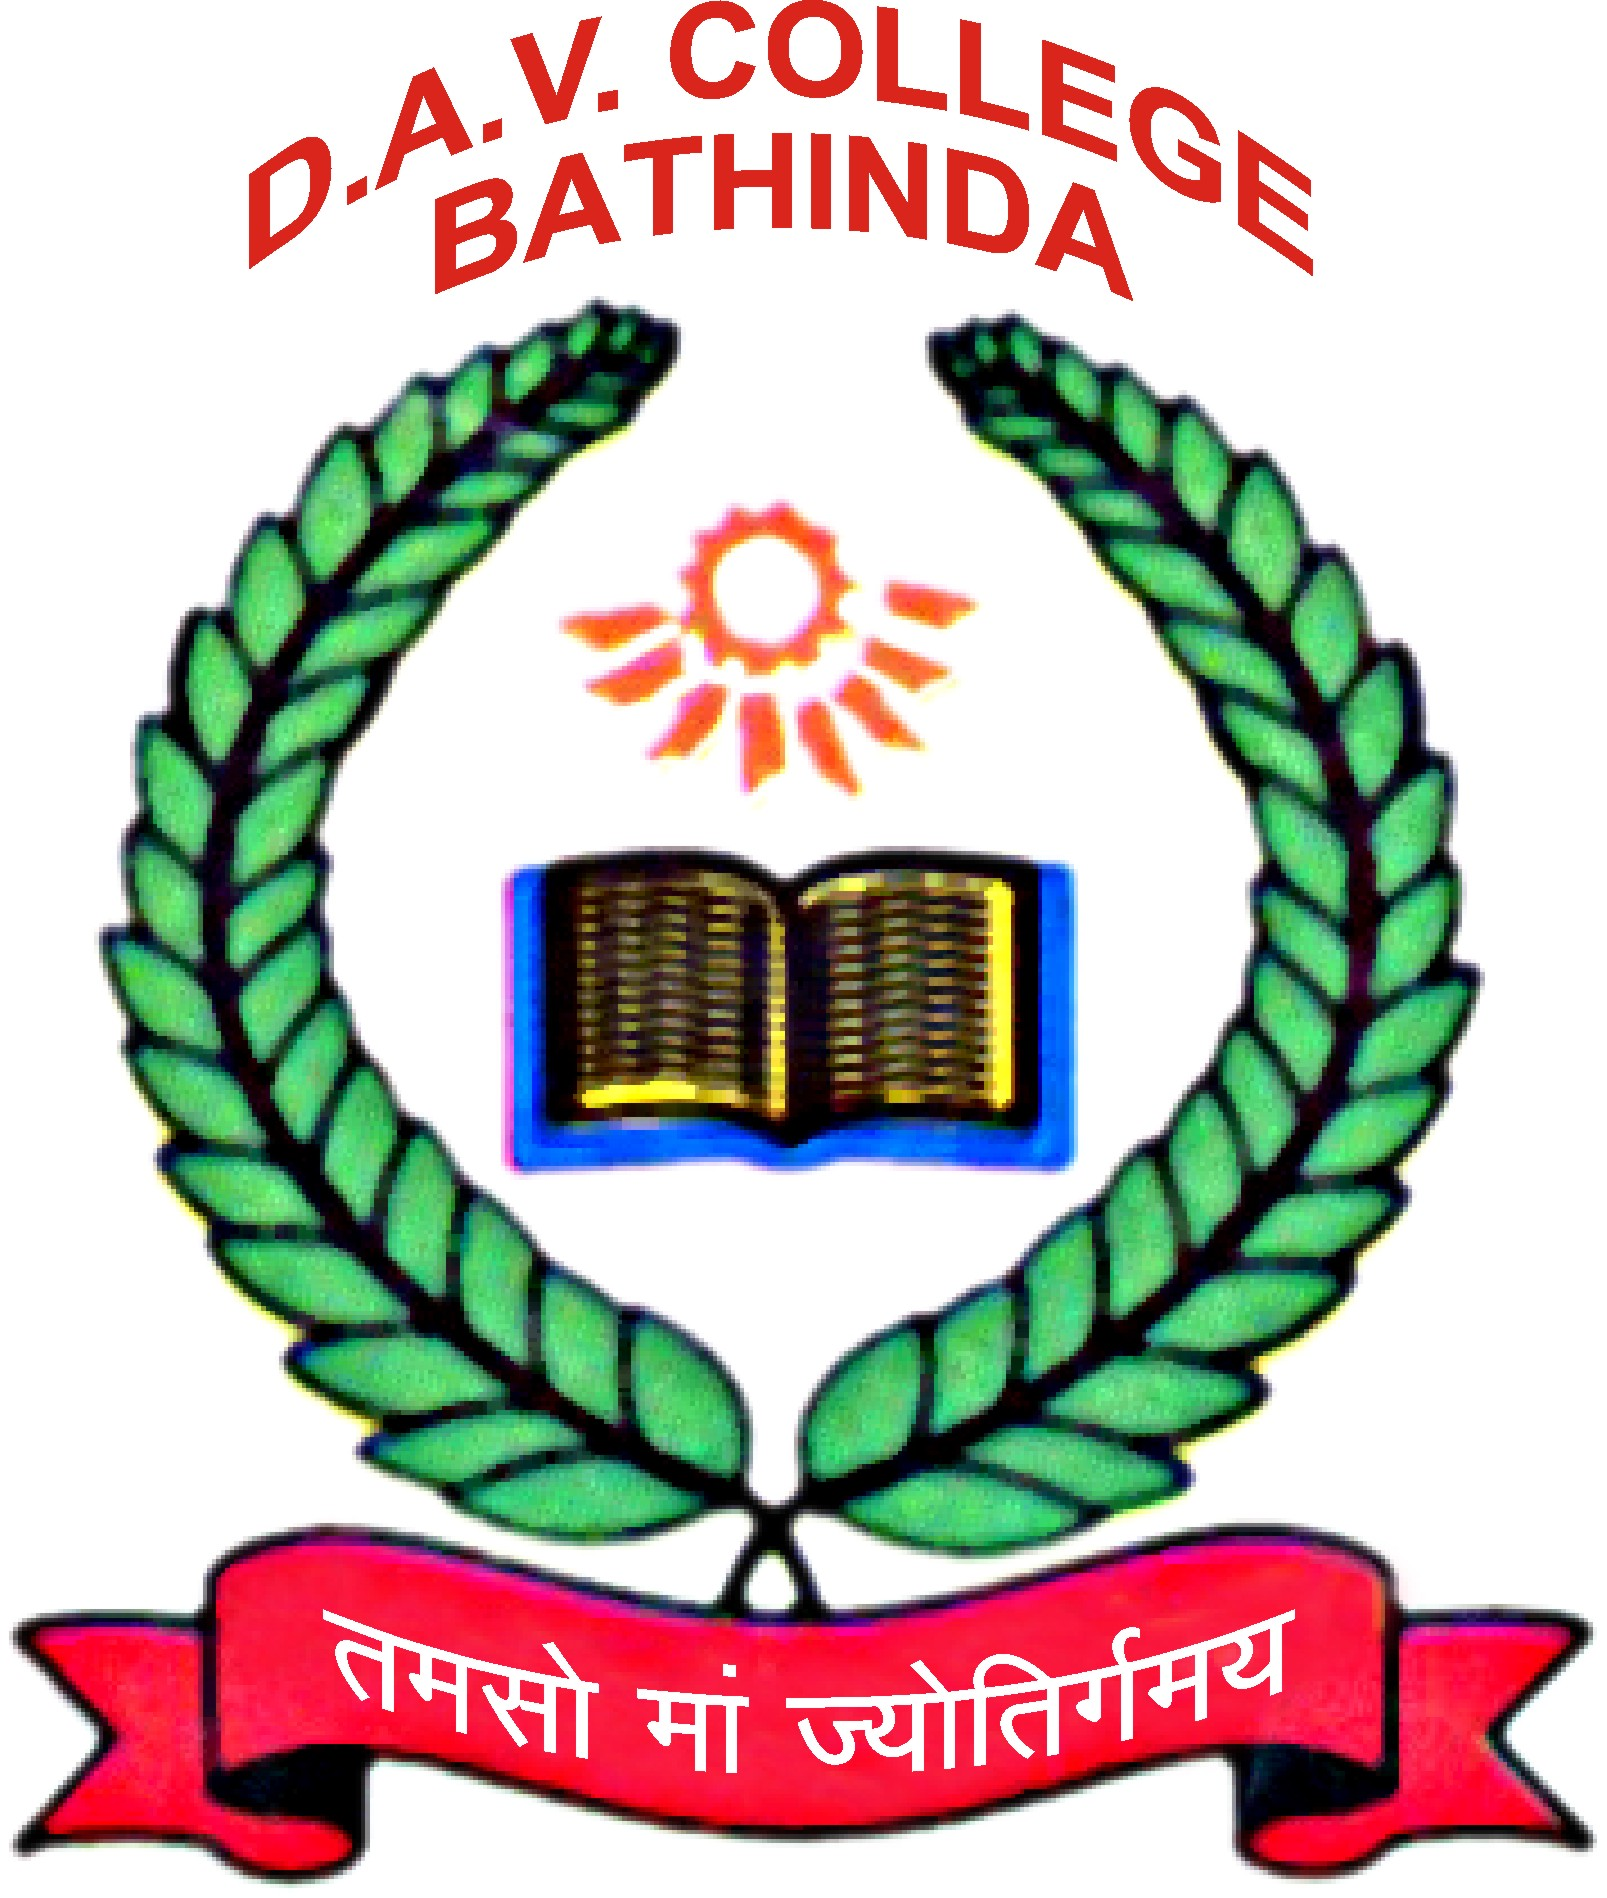 DAV COLLEGE Bathinda